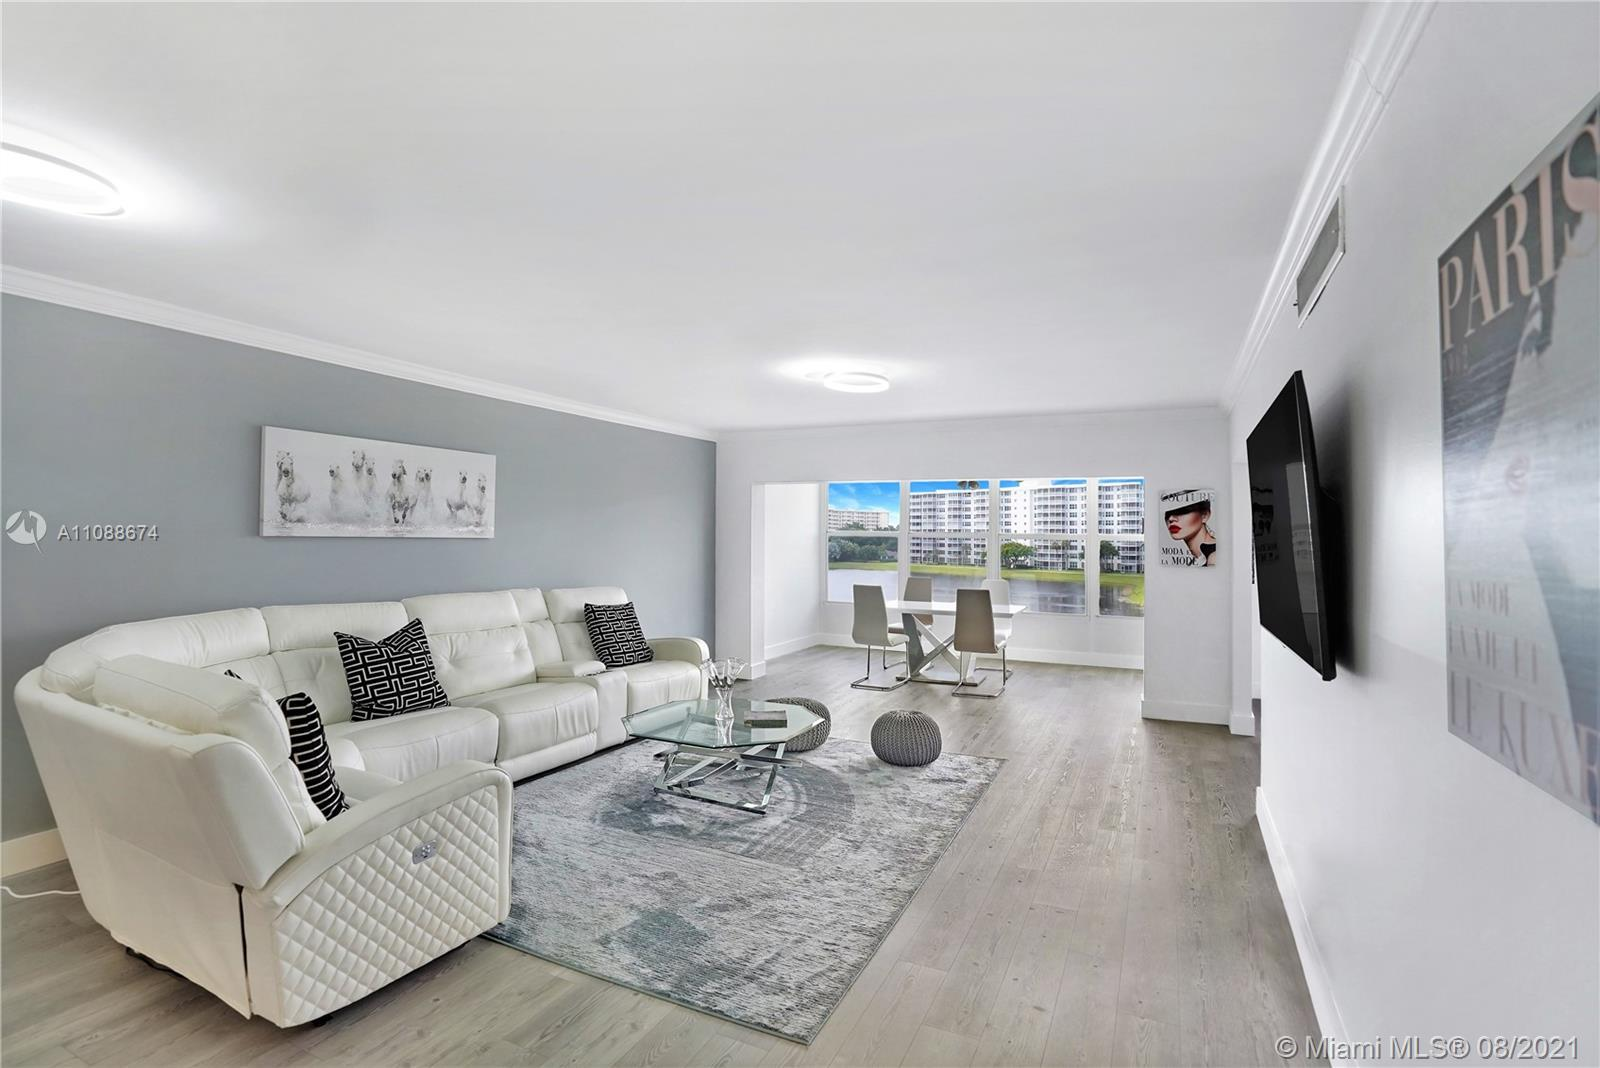 Beautiful spacious condo, all rooms and kitchen are fully remodeled with a priceless view, very well